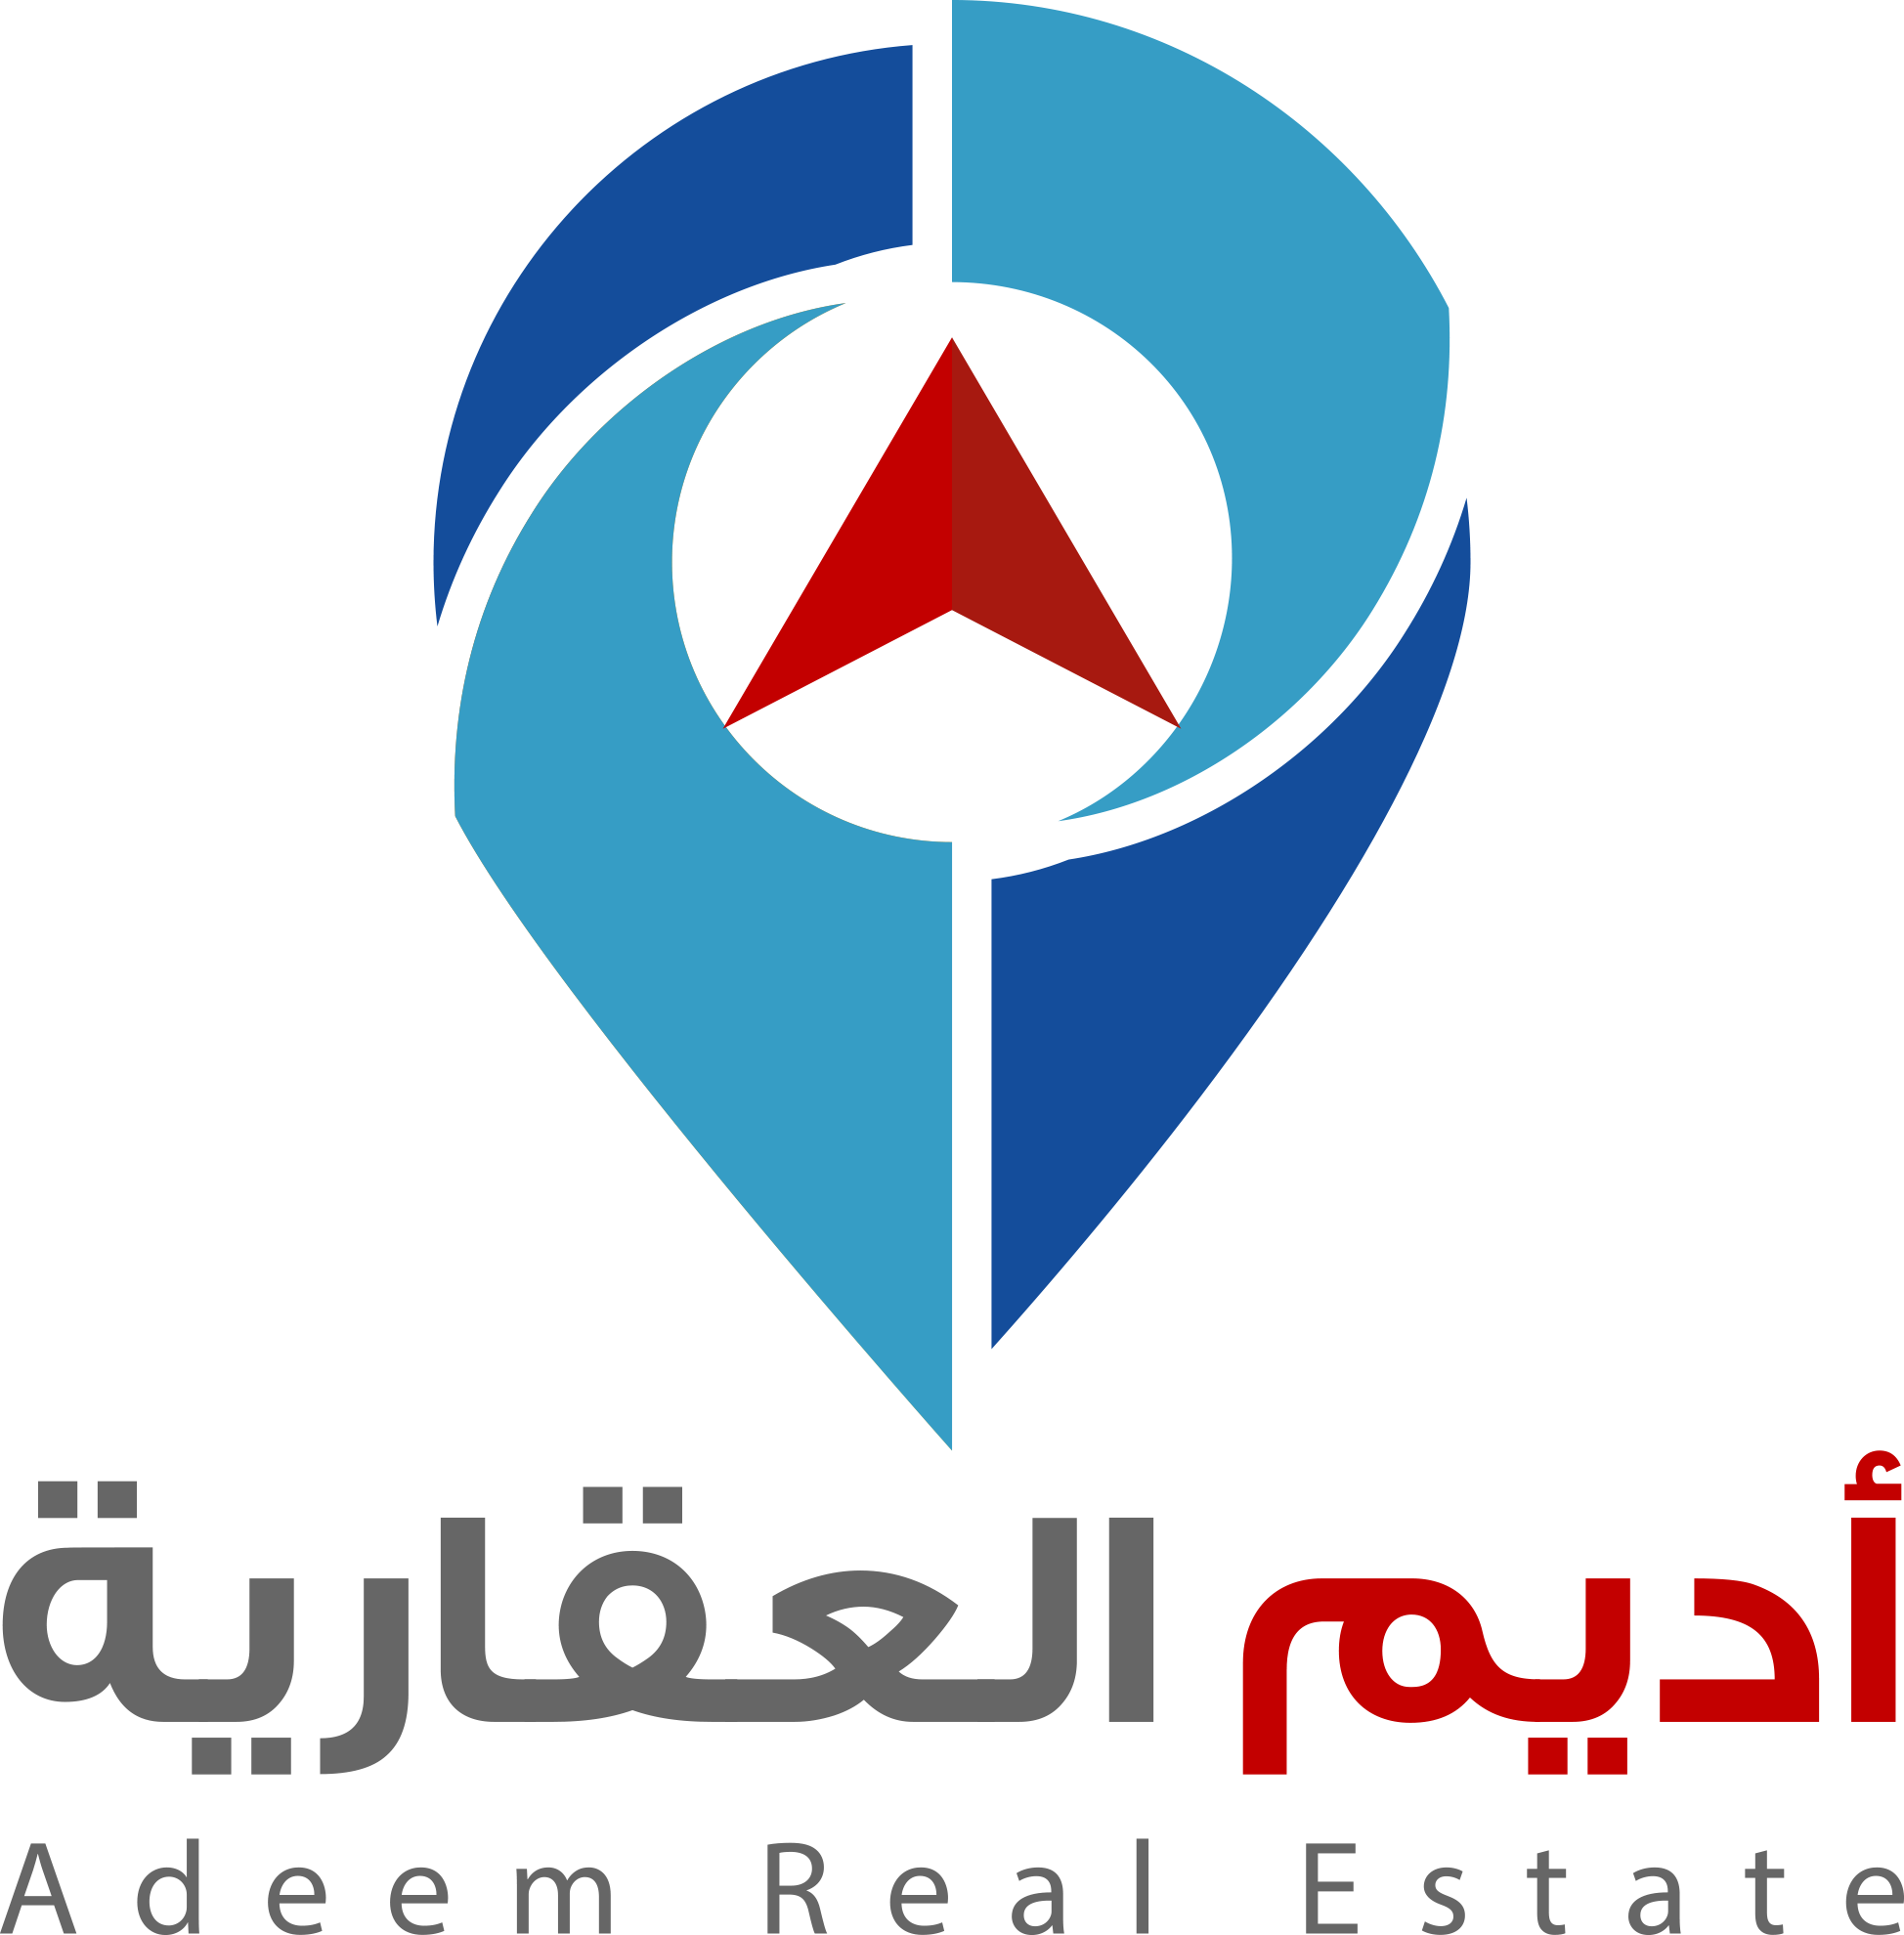 Adeem Real Estate